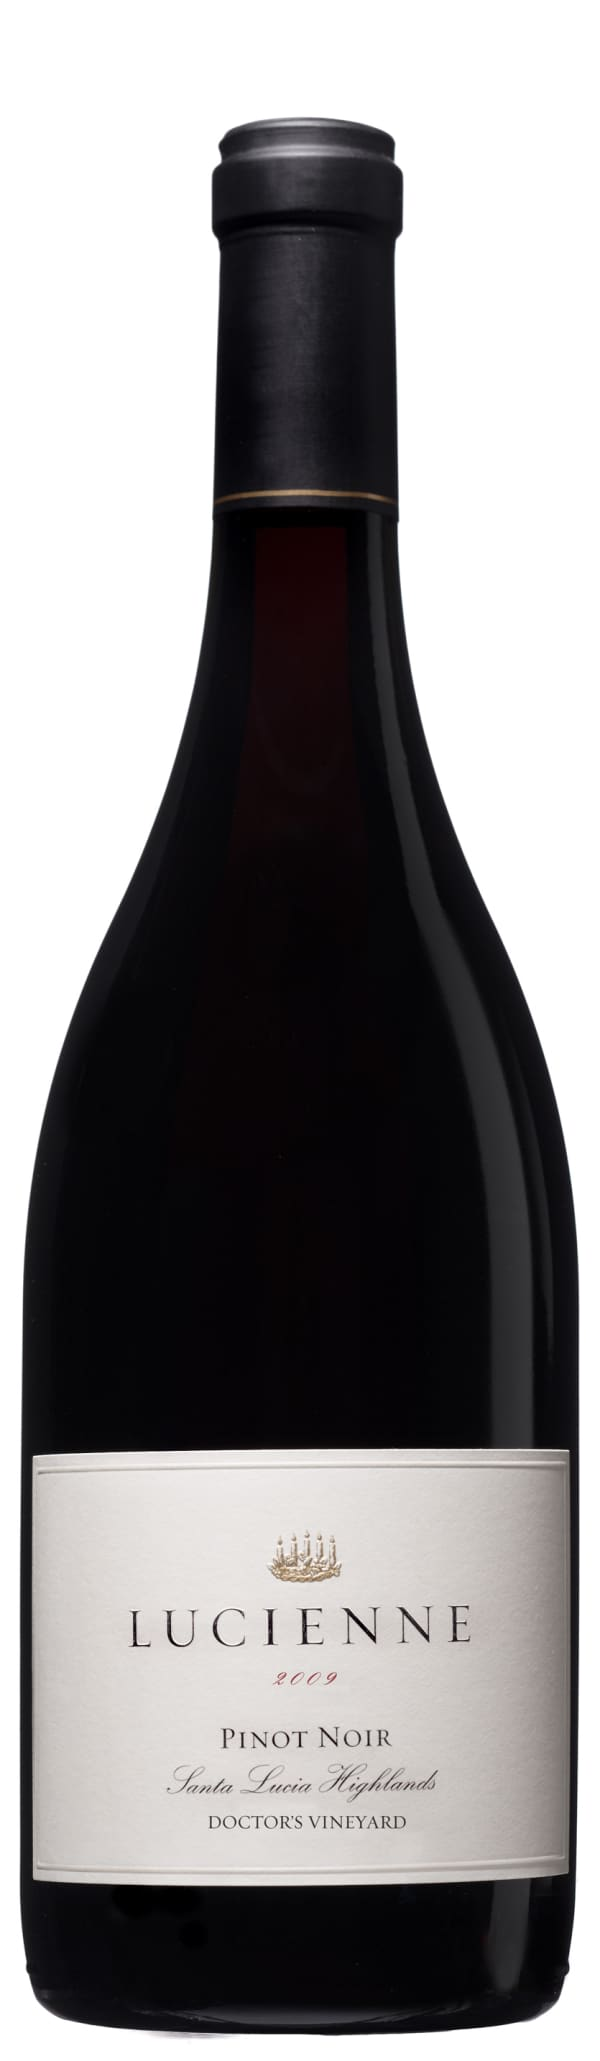 Lucienne Pinot Noir Doctor's Vineyard 2014